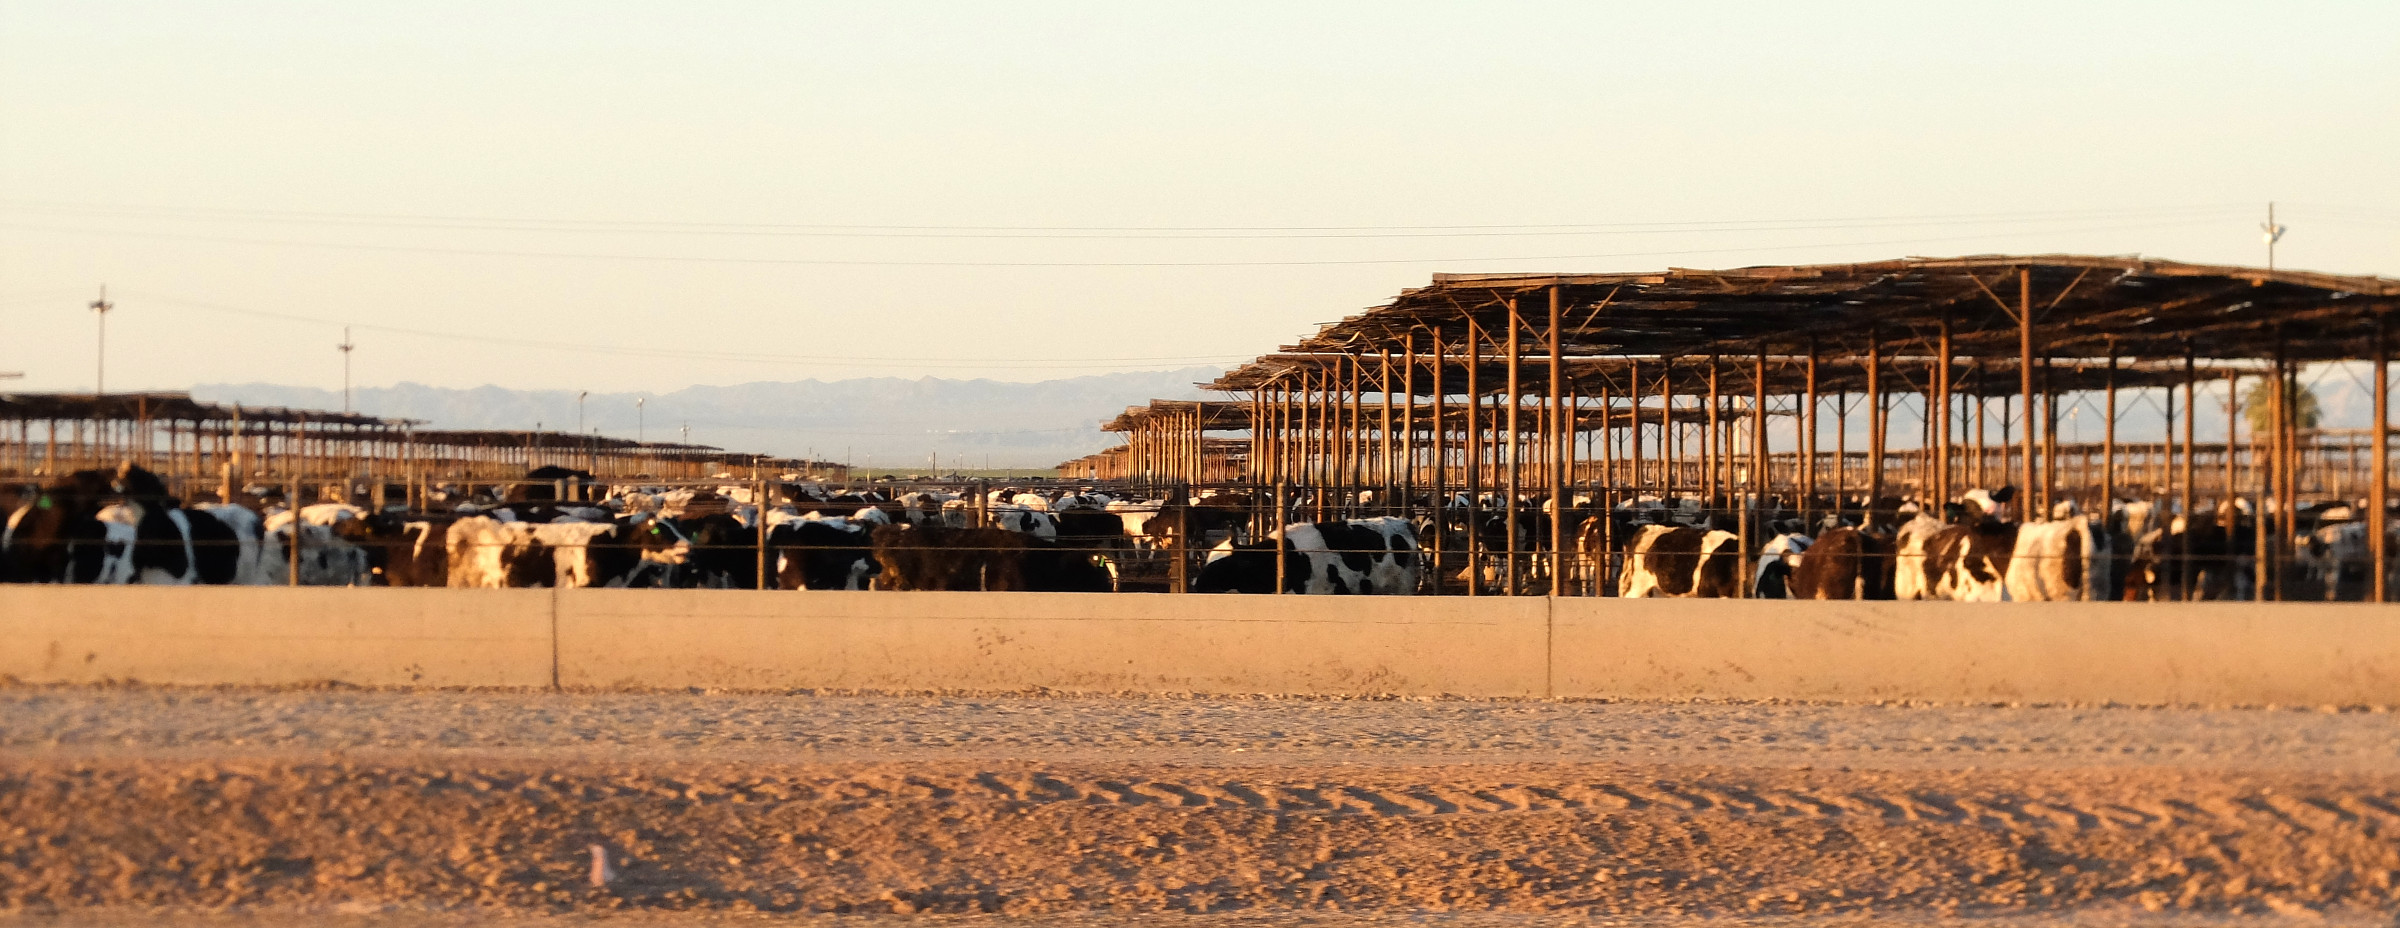 Concentrated animal feeding operation in the desert in Imperial County in southern California